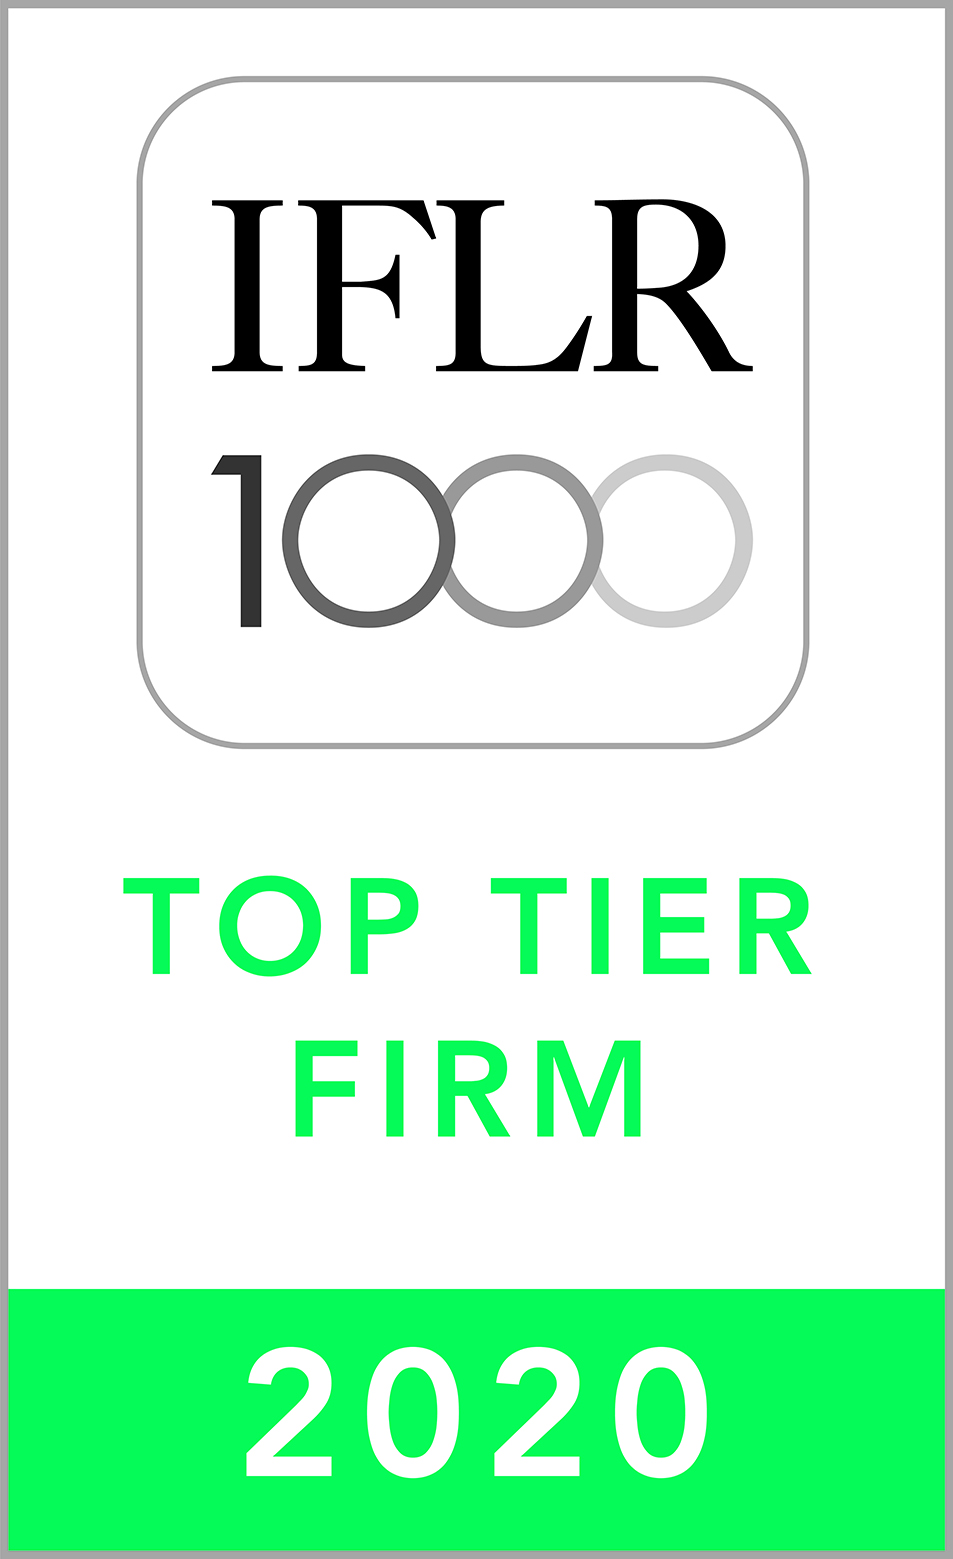 IFLR1000 2020 Top Tier Firm